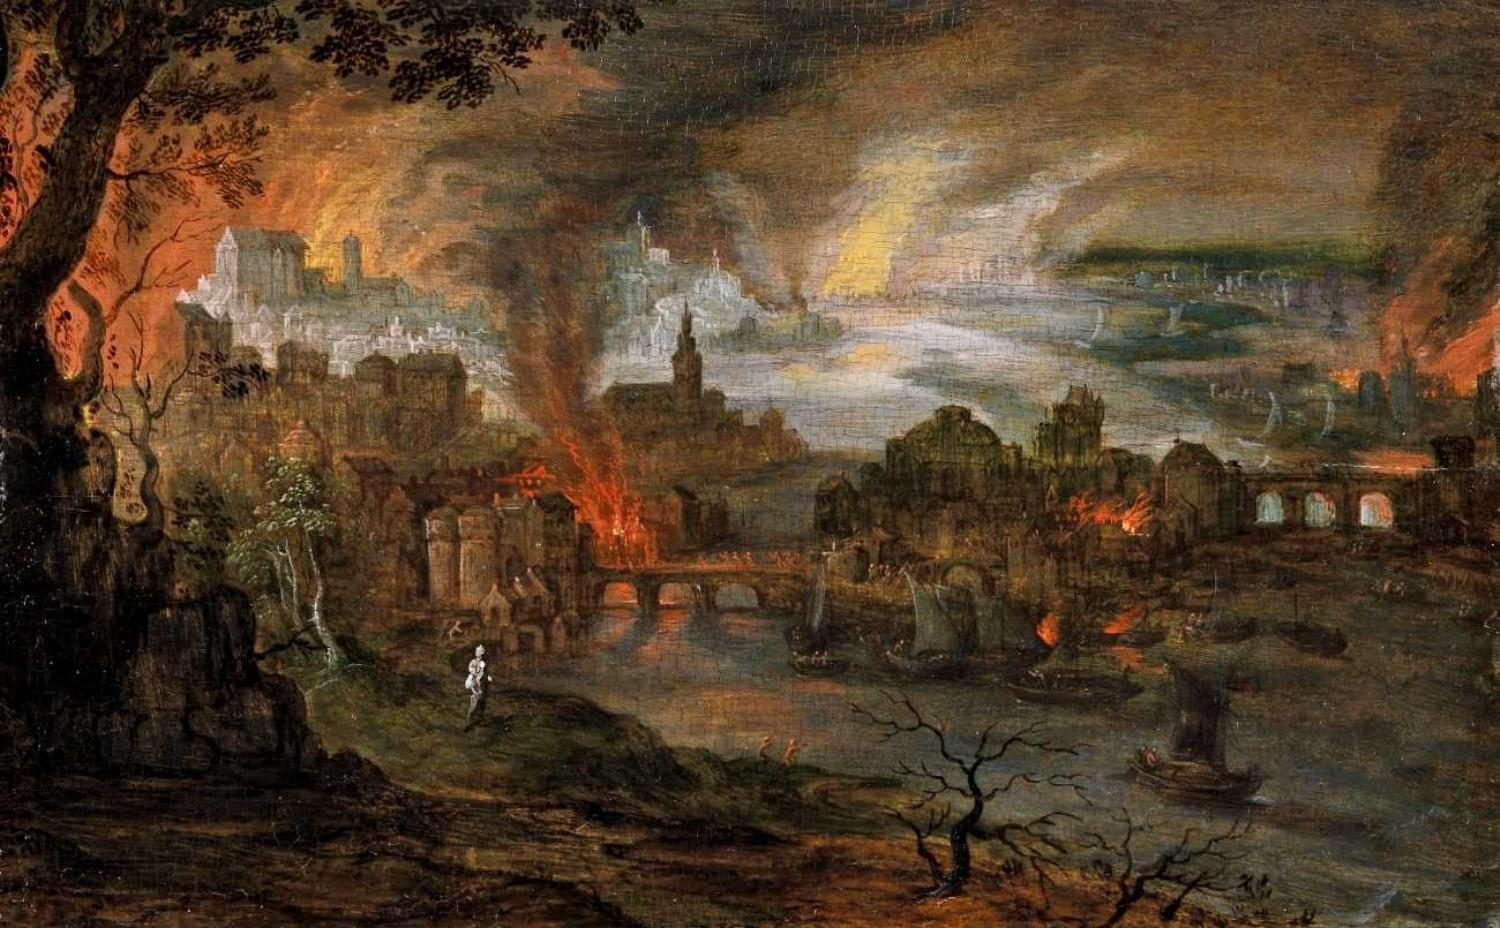 Pieter Schoubroeck - The Destruction of Sodom and Gomorrah